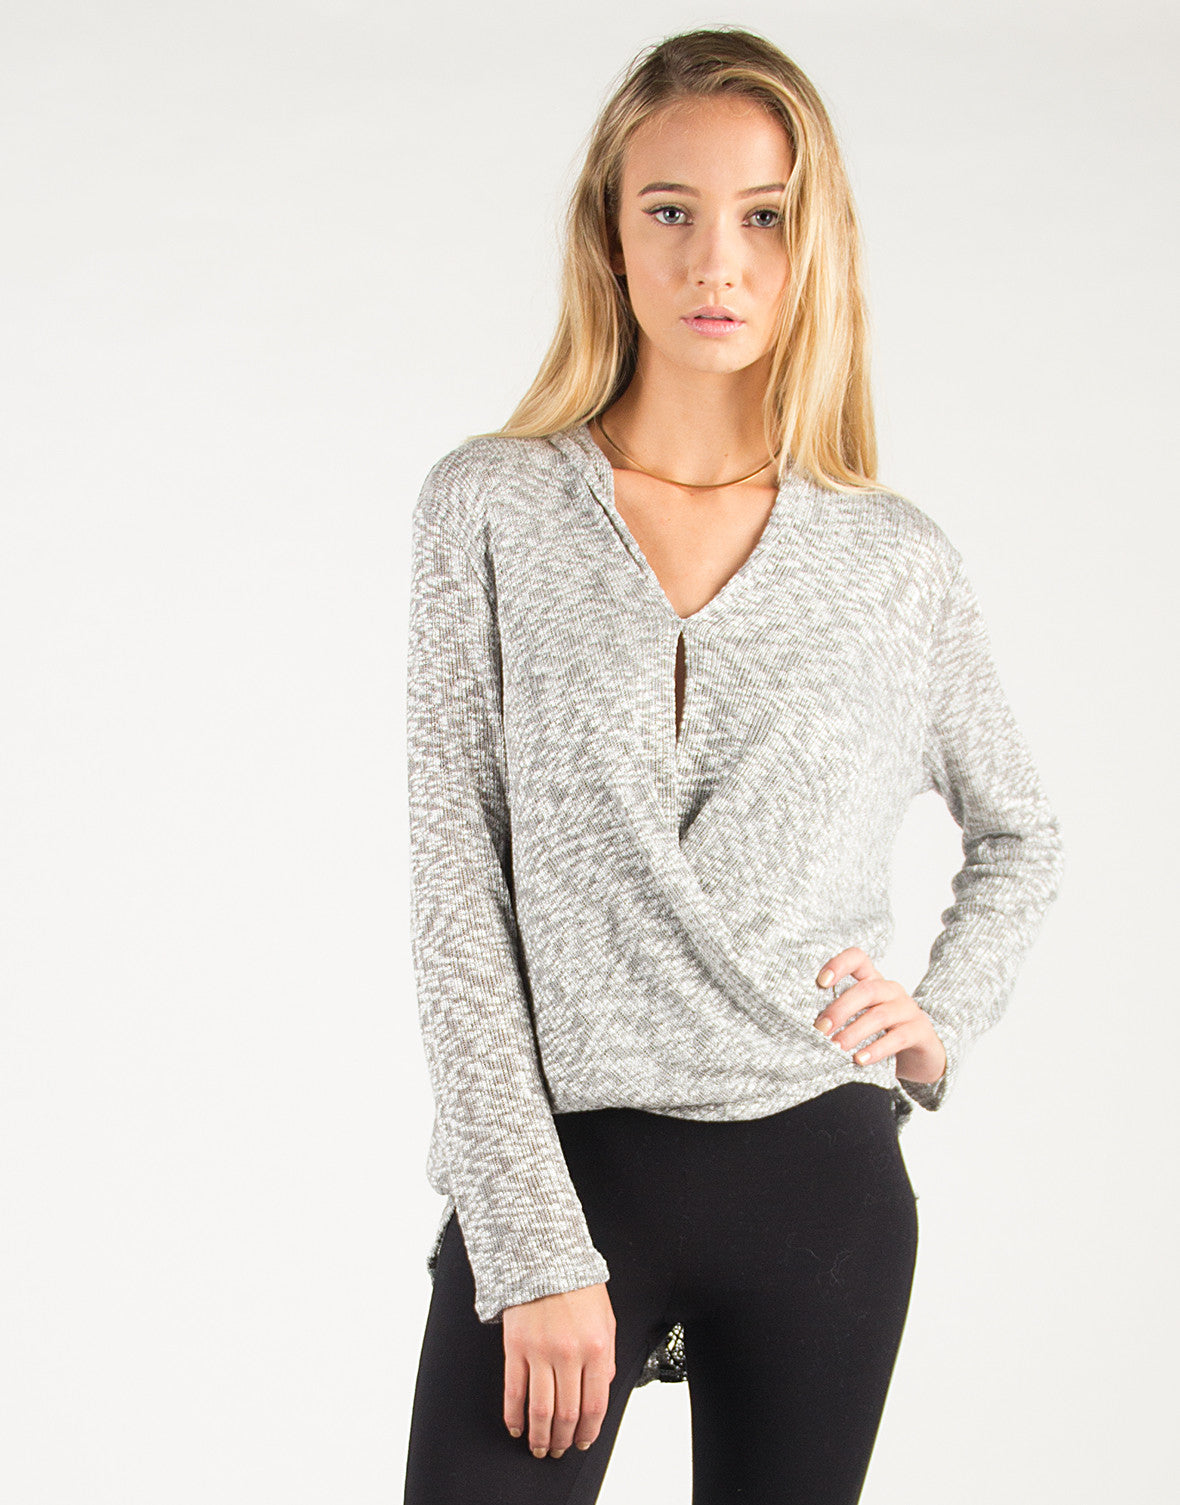 Draped Front Crochet Back Detail Long Sleeve Top - Gray - Large - 2020AVE